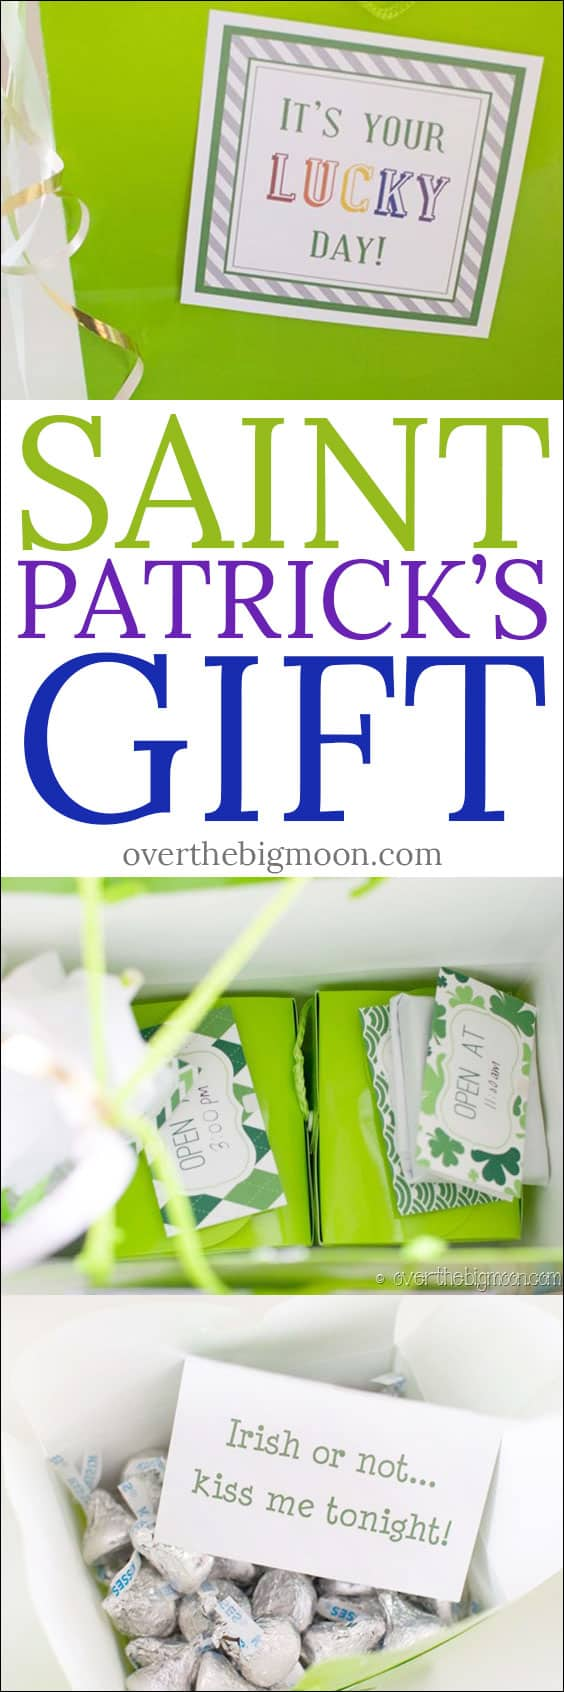 St. Patrick's Day Gift Idea for your signficant other! A gift idea that will last all day! From overthebigmoon.com!